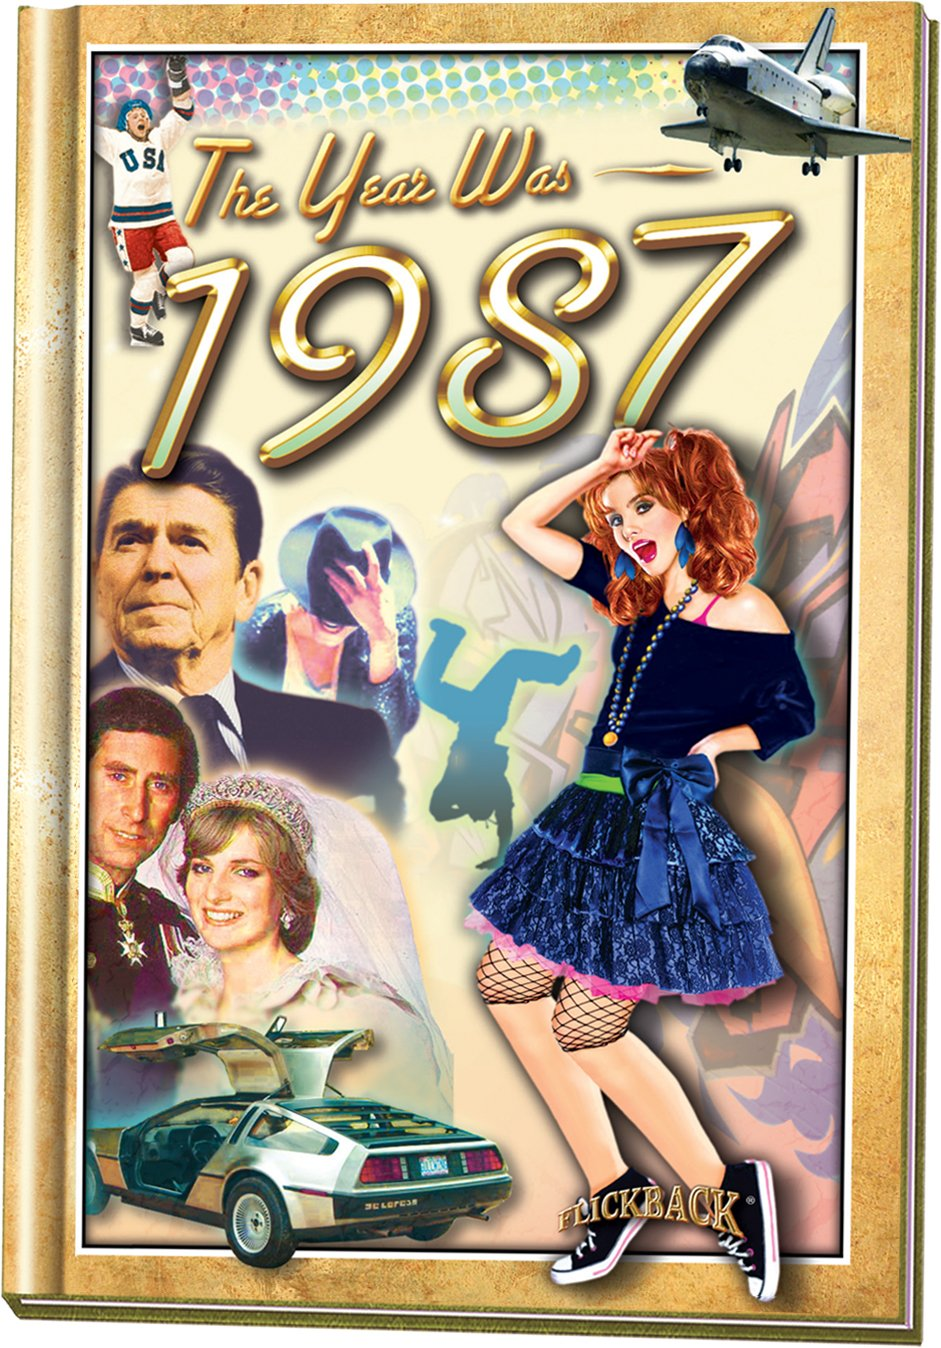 Download The Year Was 1987 Hardcover Mini Book: 31st Birthday or Anniversary Present pdf